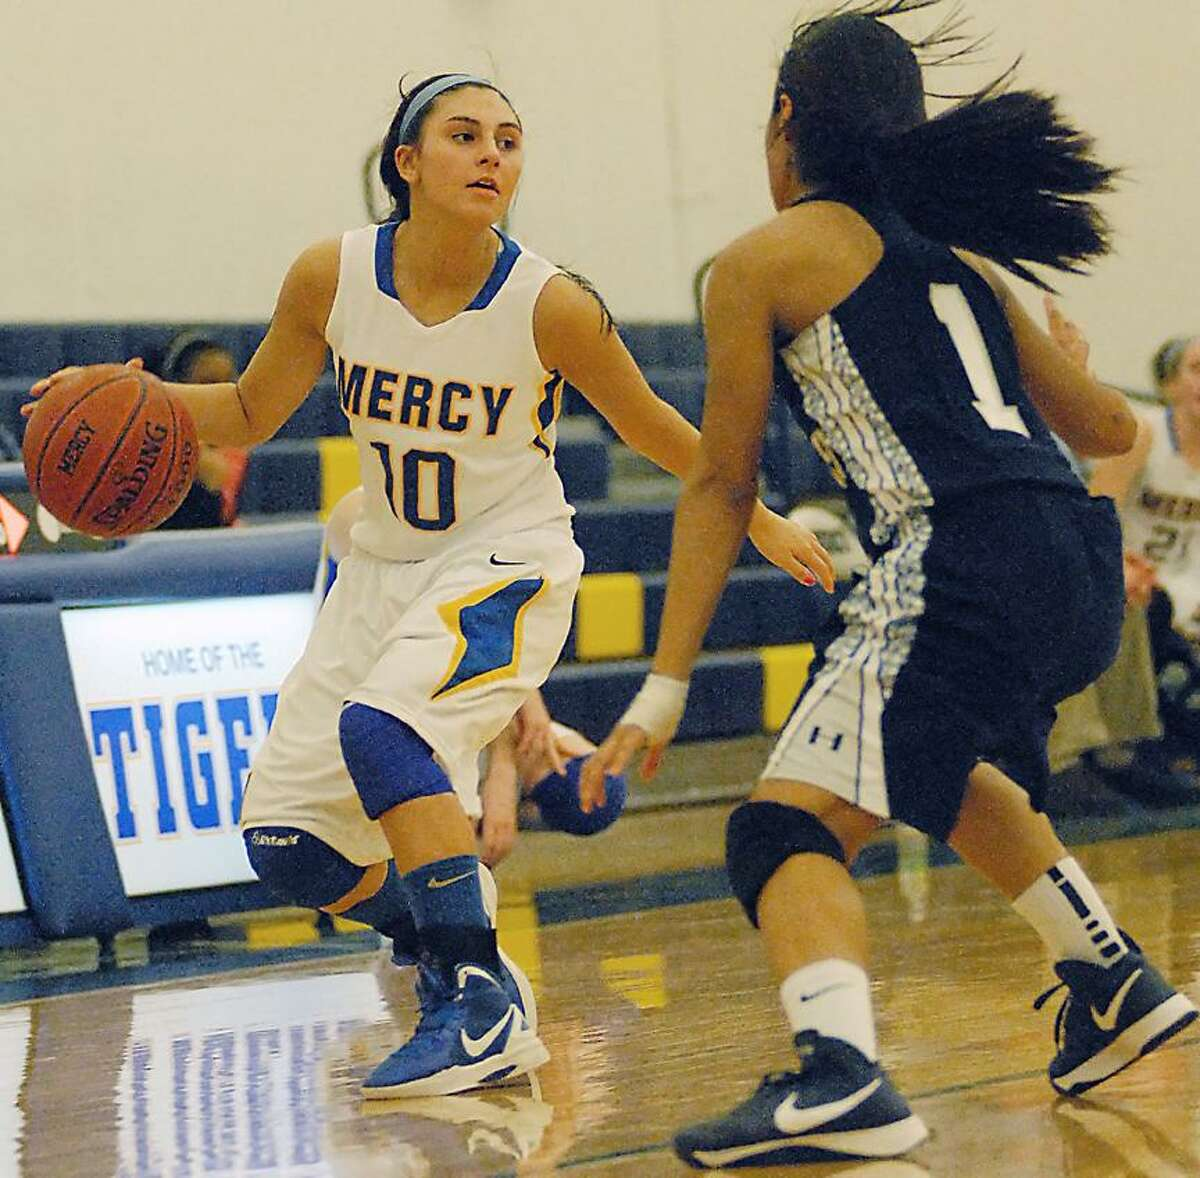 Catherine Avalone/The Middletown PressMercy senior Jordyn Nappi looks to make a pass around Hillhouse's Allegra Jones Friday night. The Mercy Tigers defeated the Hillhouse Academics 63-23.